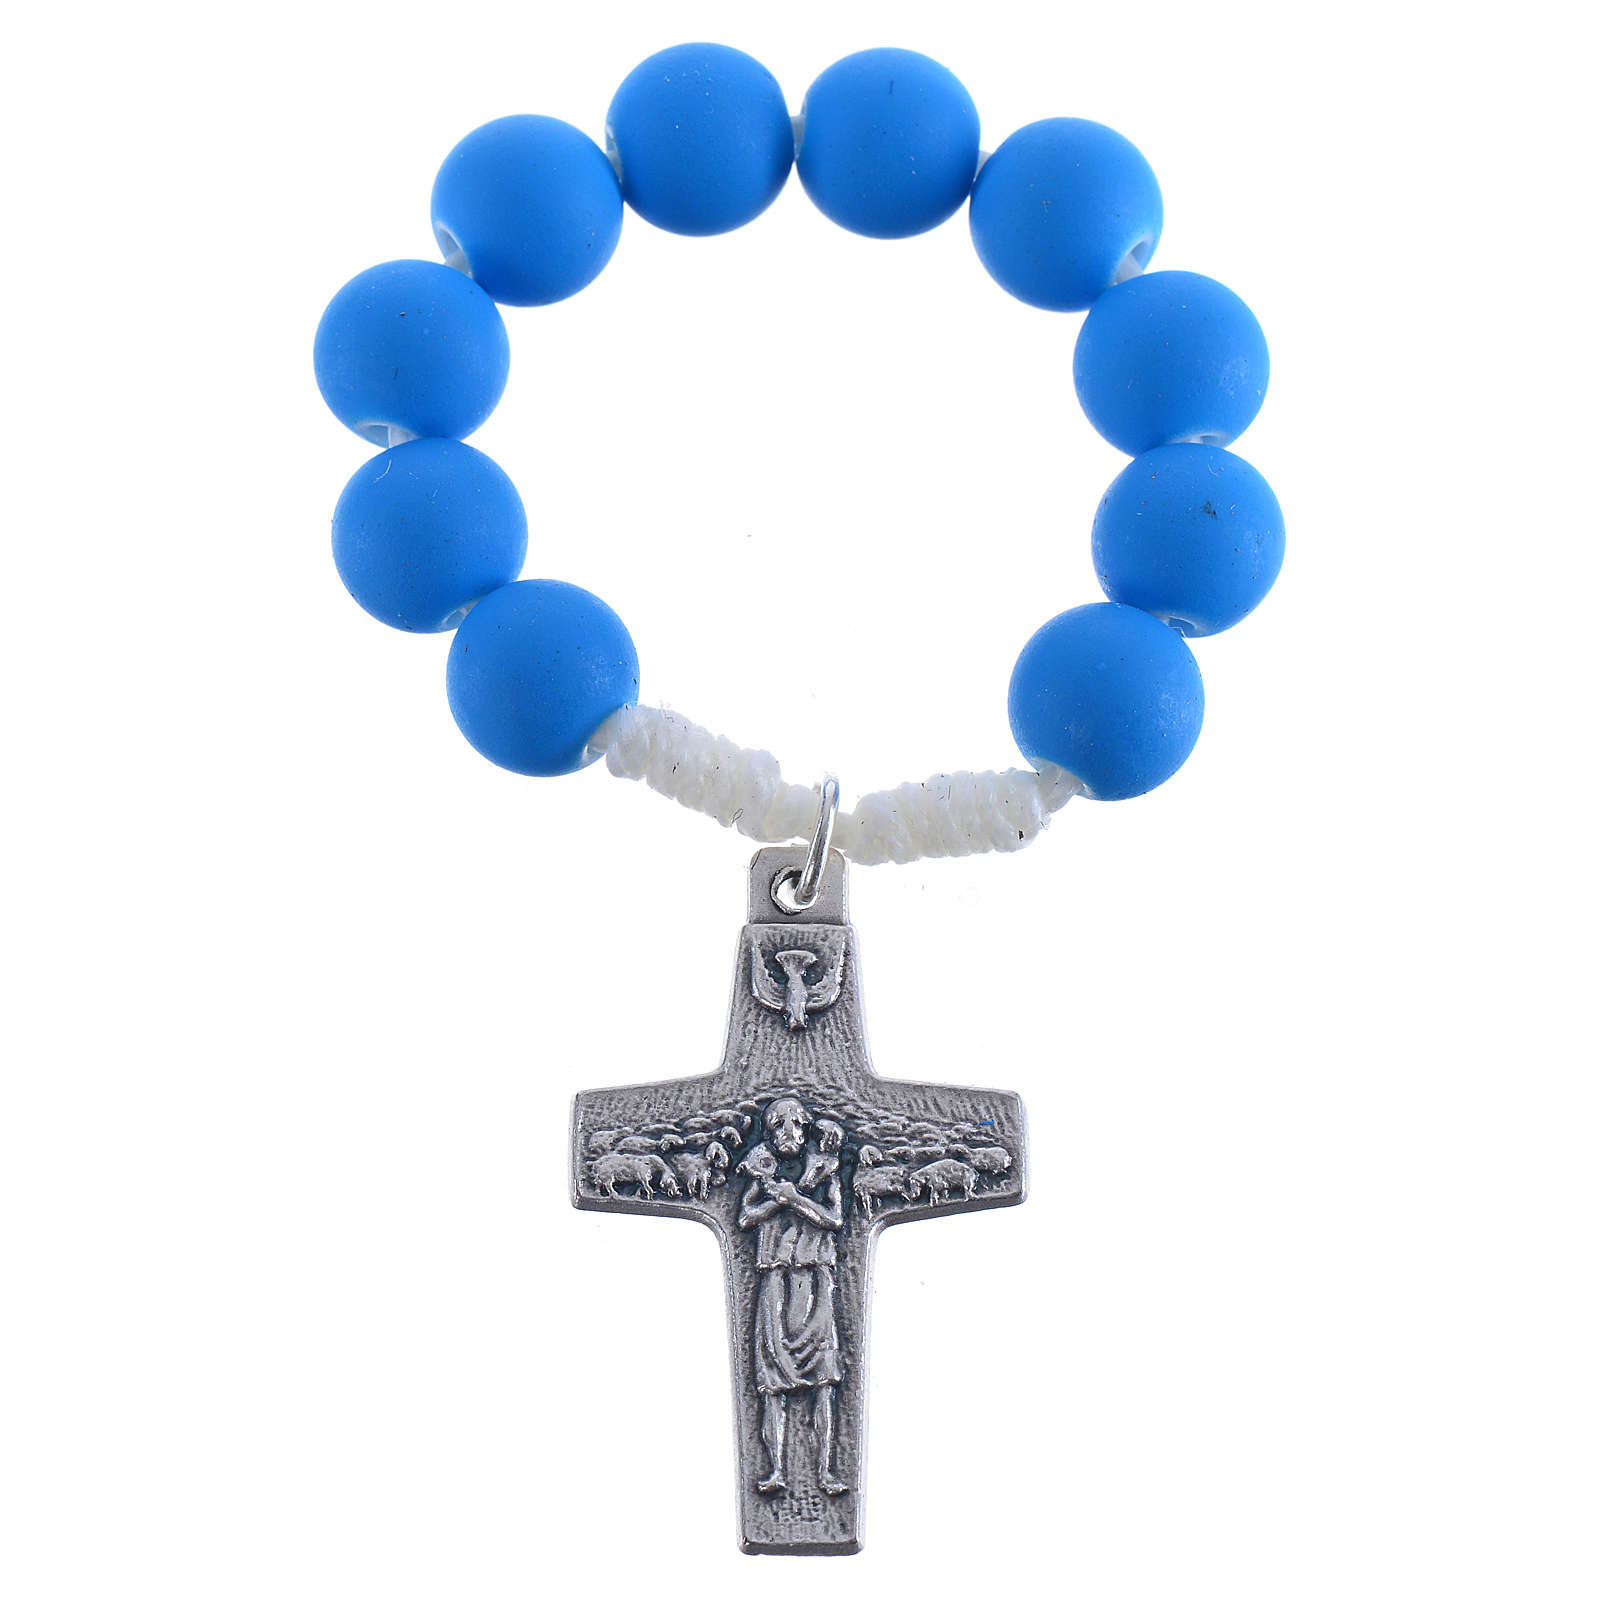 Single decade rosary beads in blue fimo, Pope Francis 4